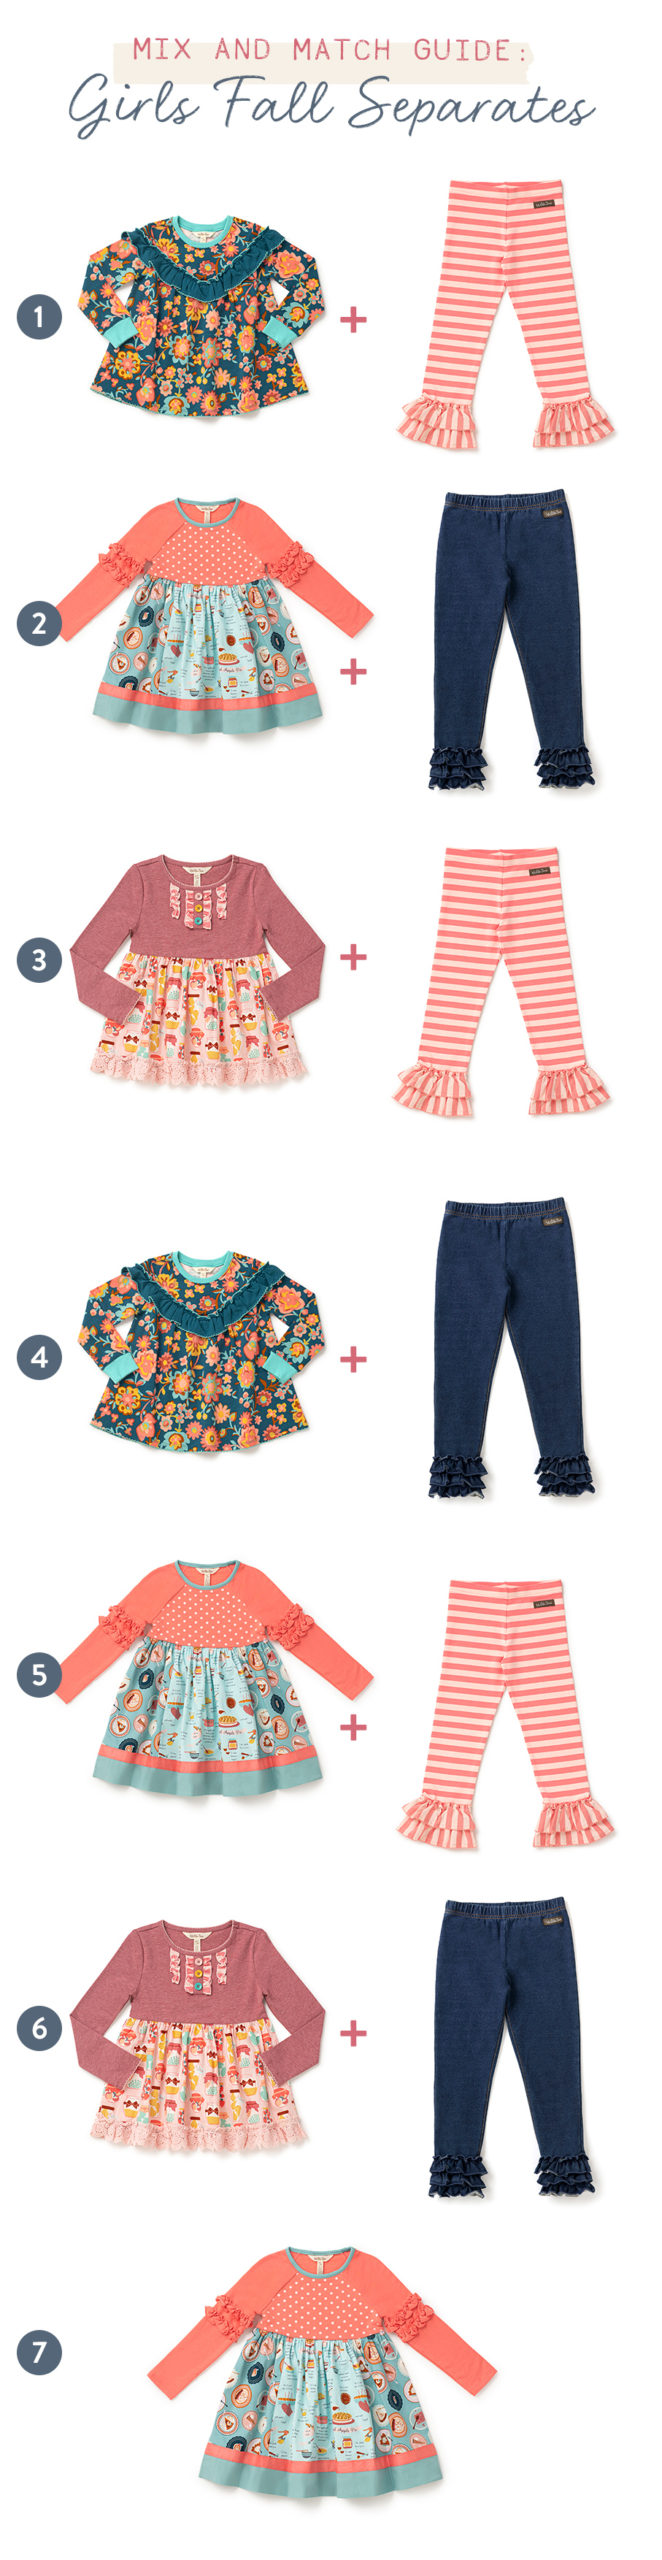 october mix and match guide - girls separates